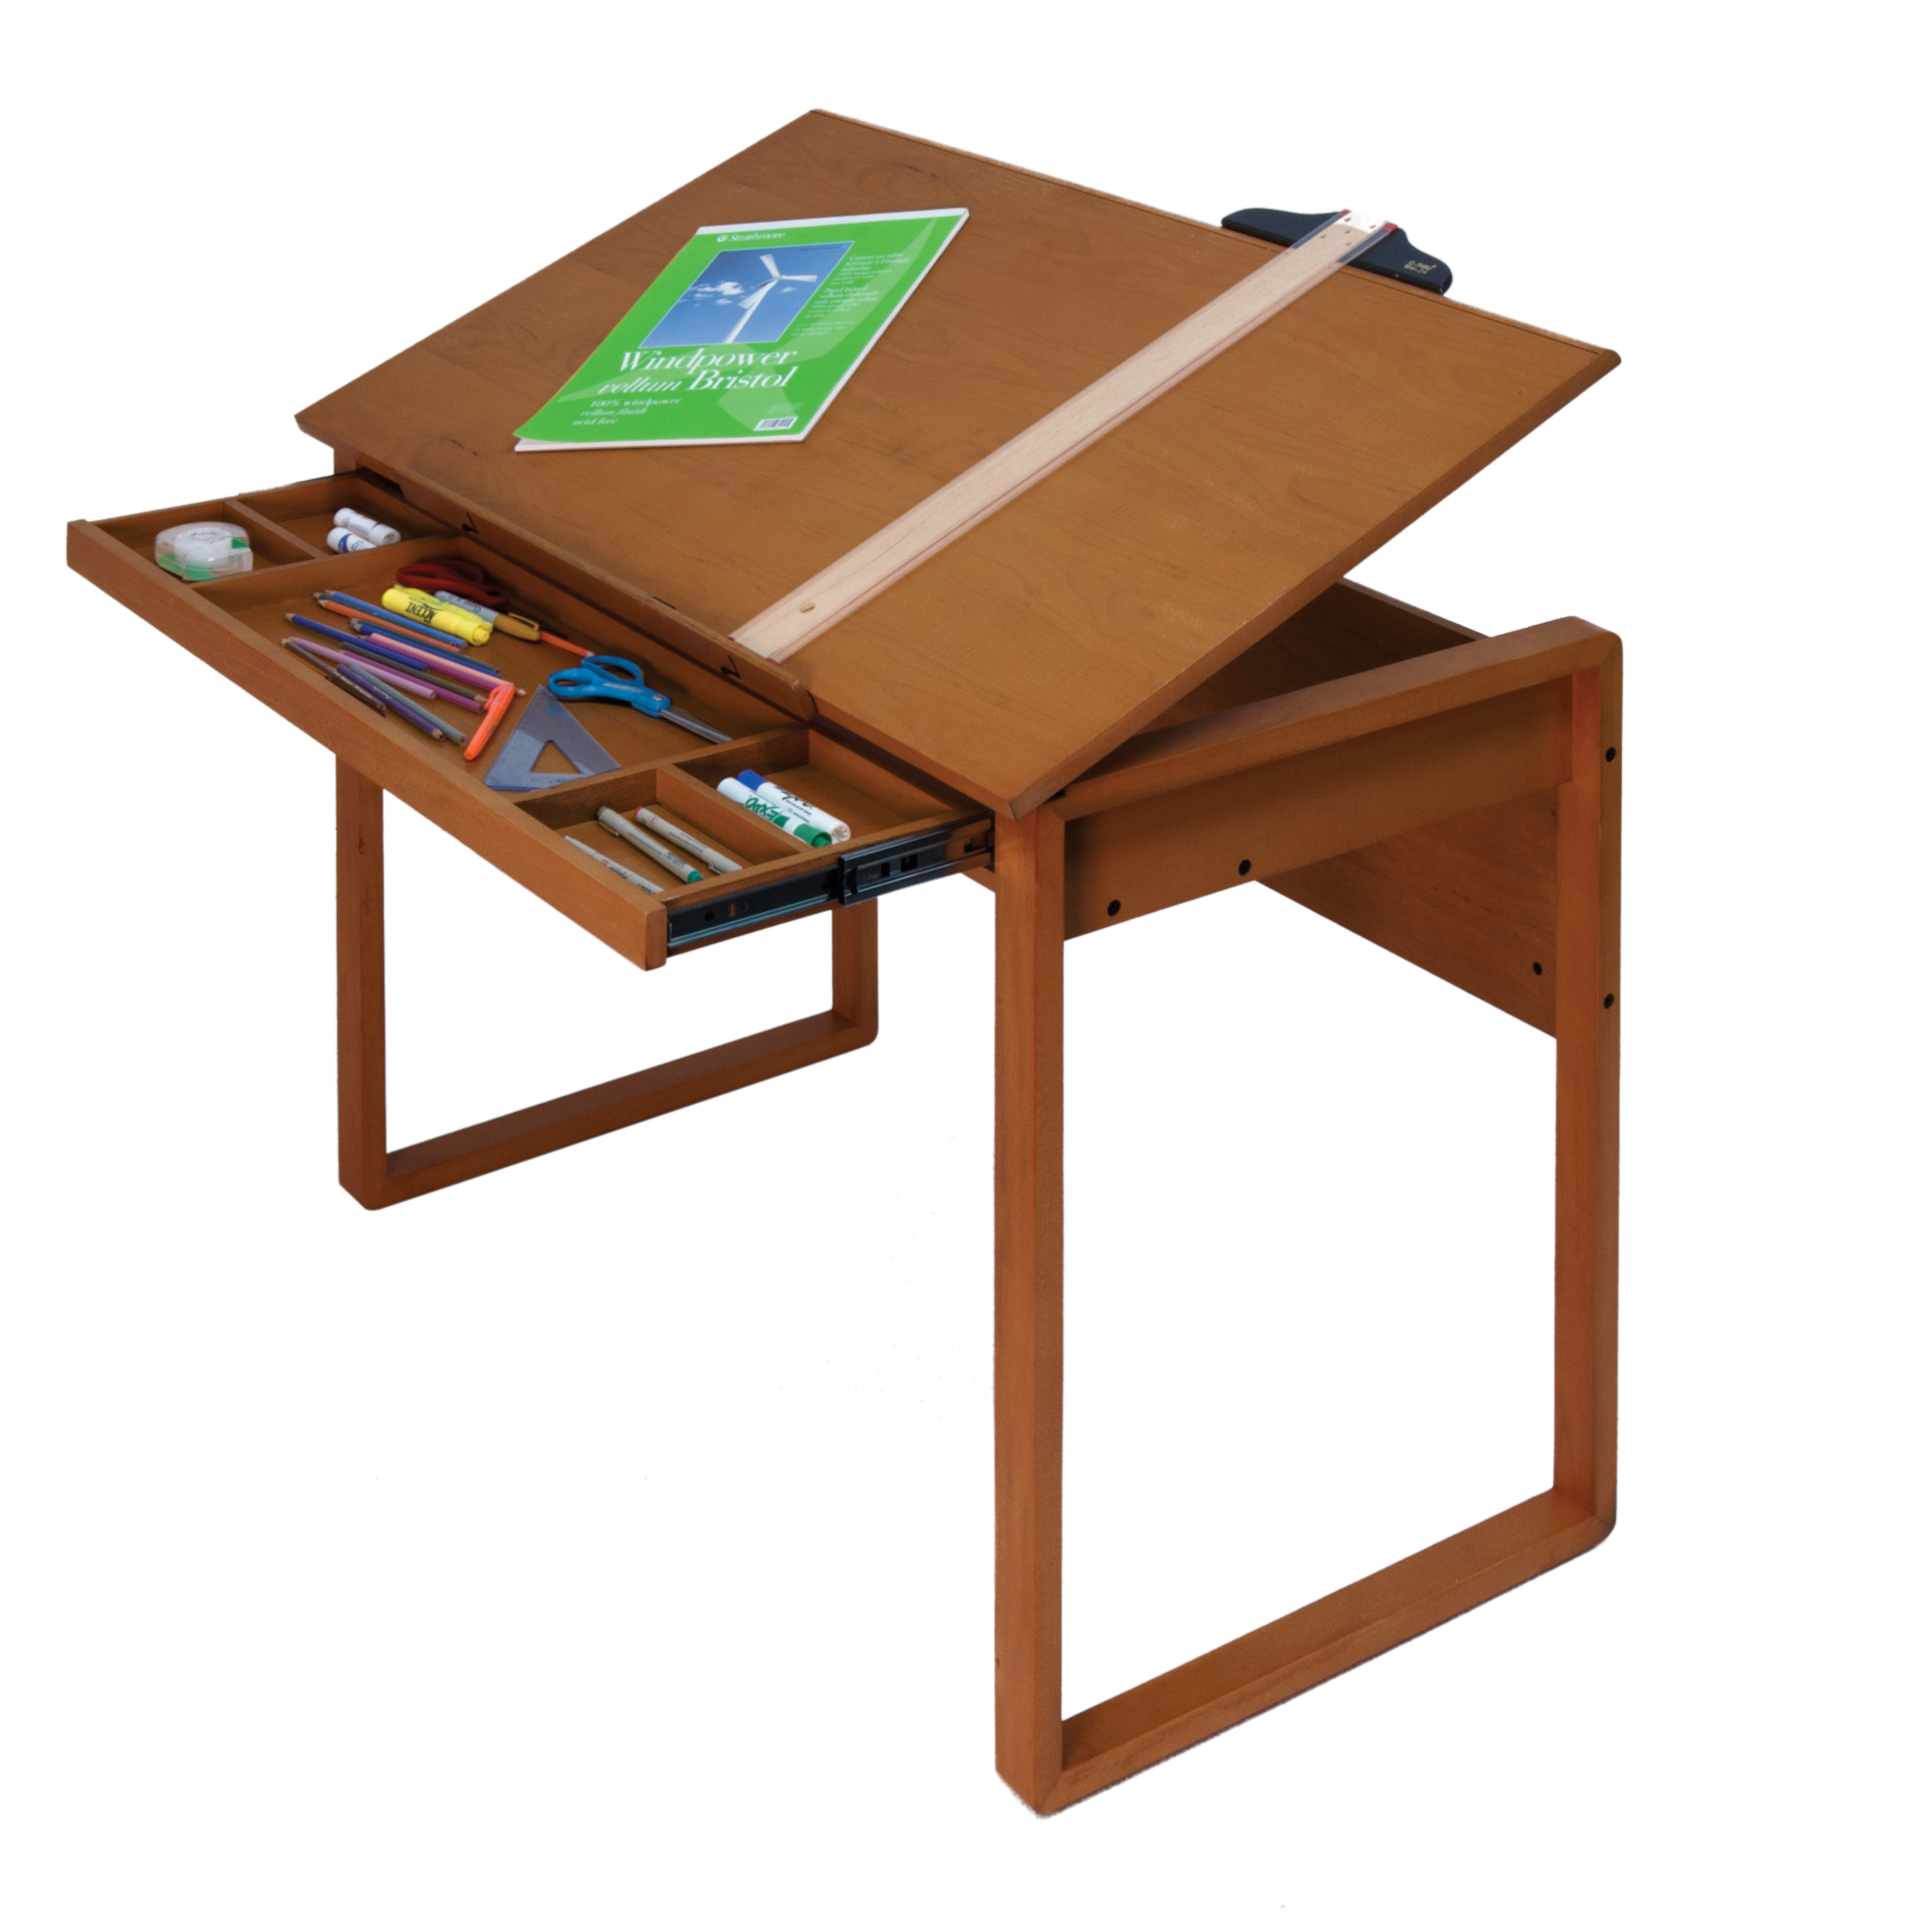 2494x2511 Designs Ponderosa Wood Topped Craft Table 13285